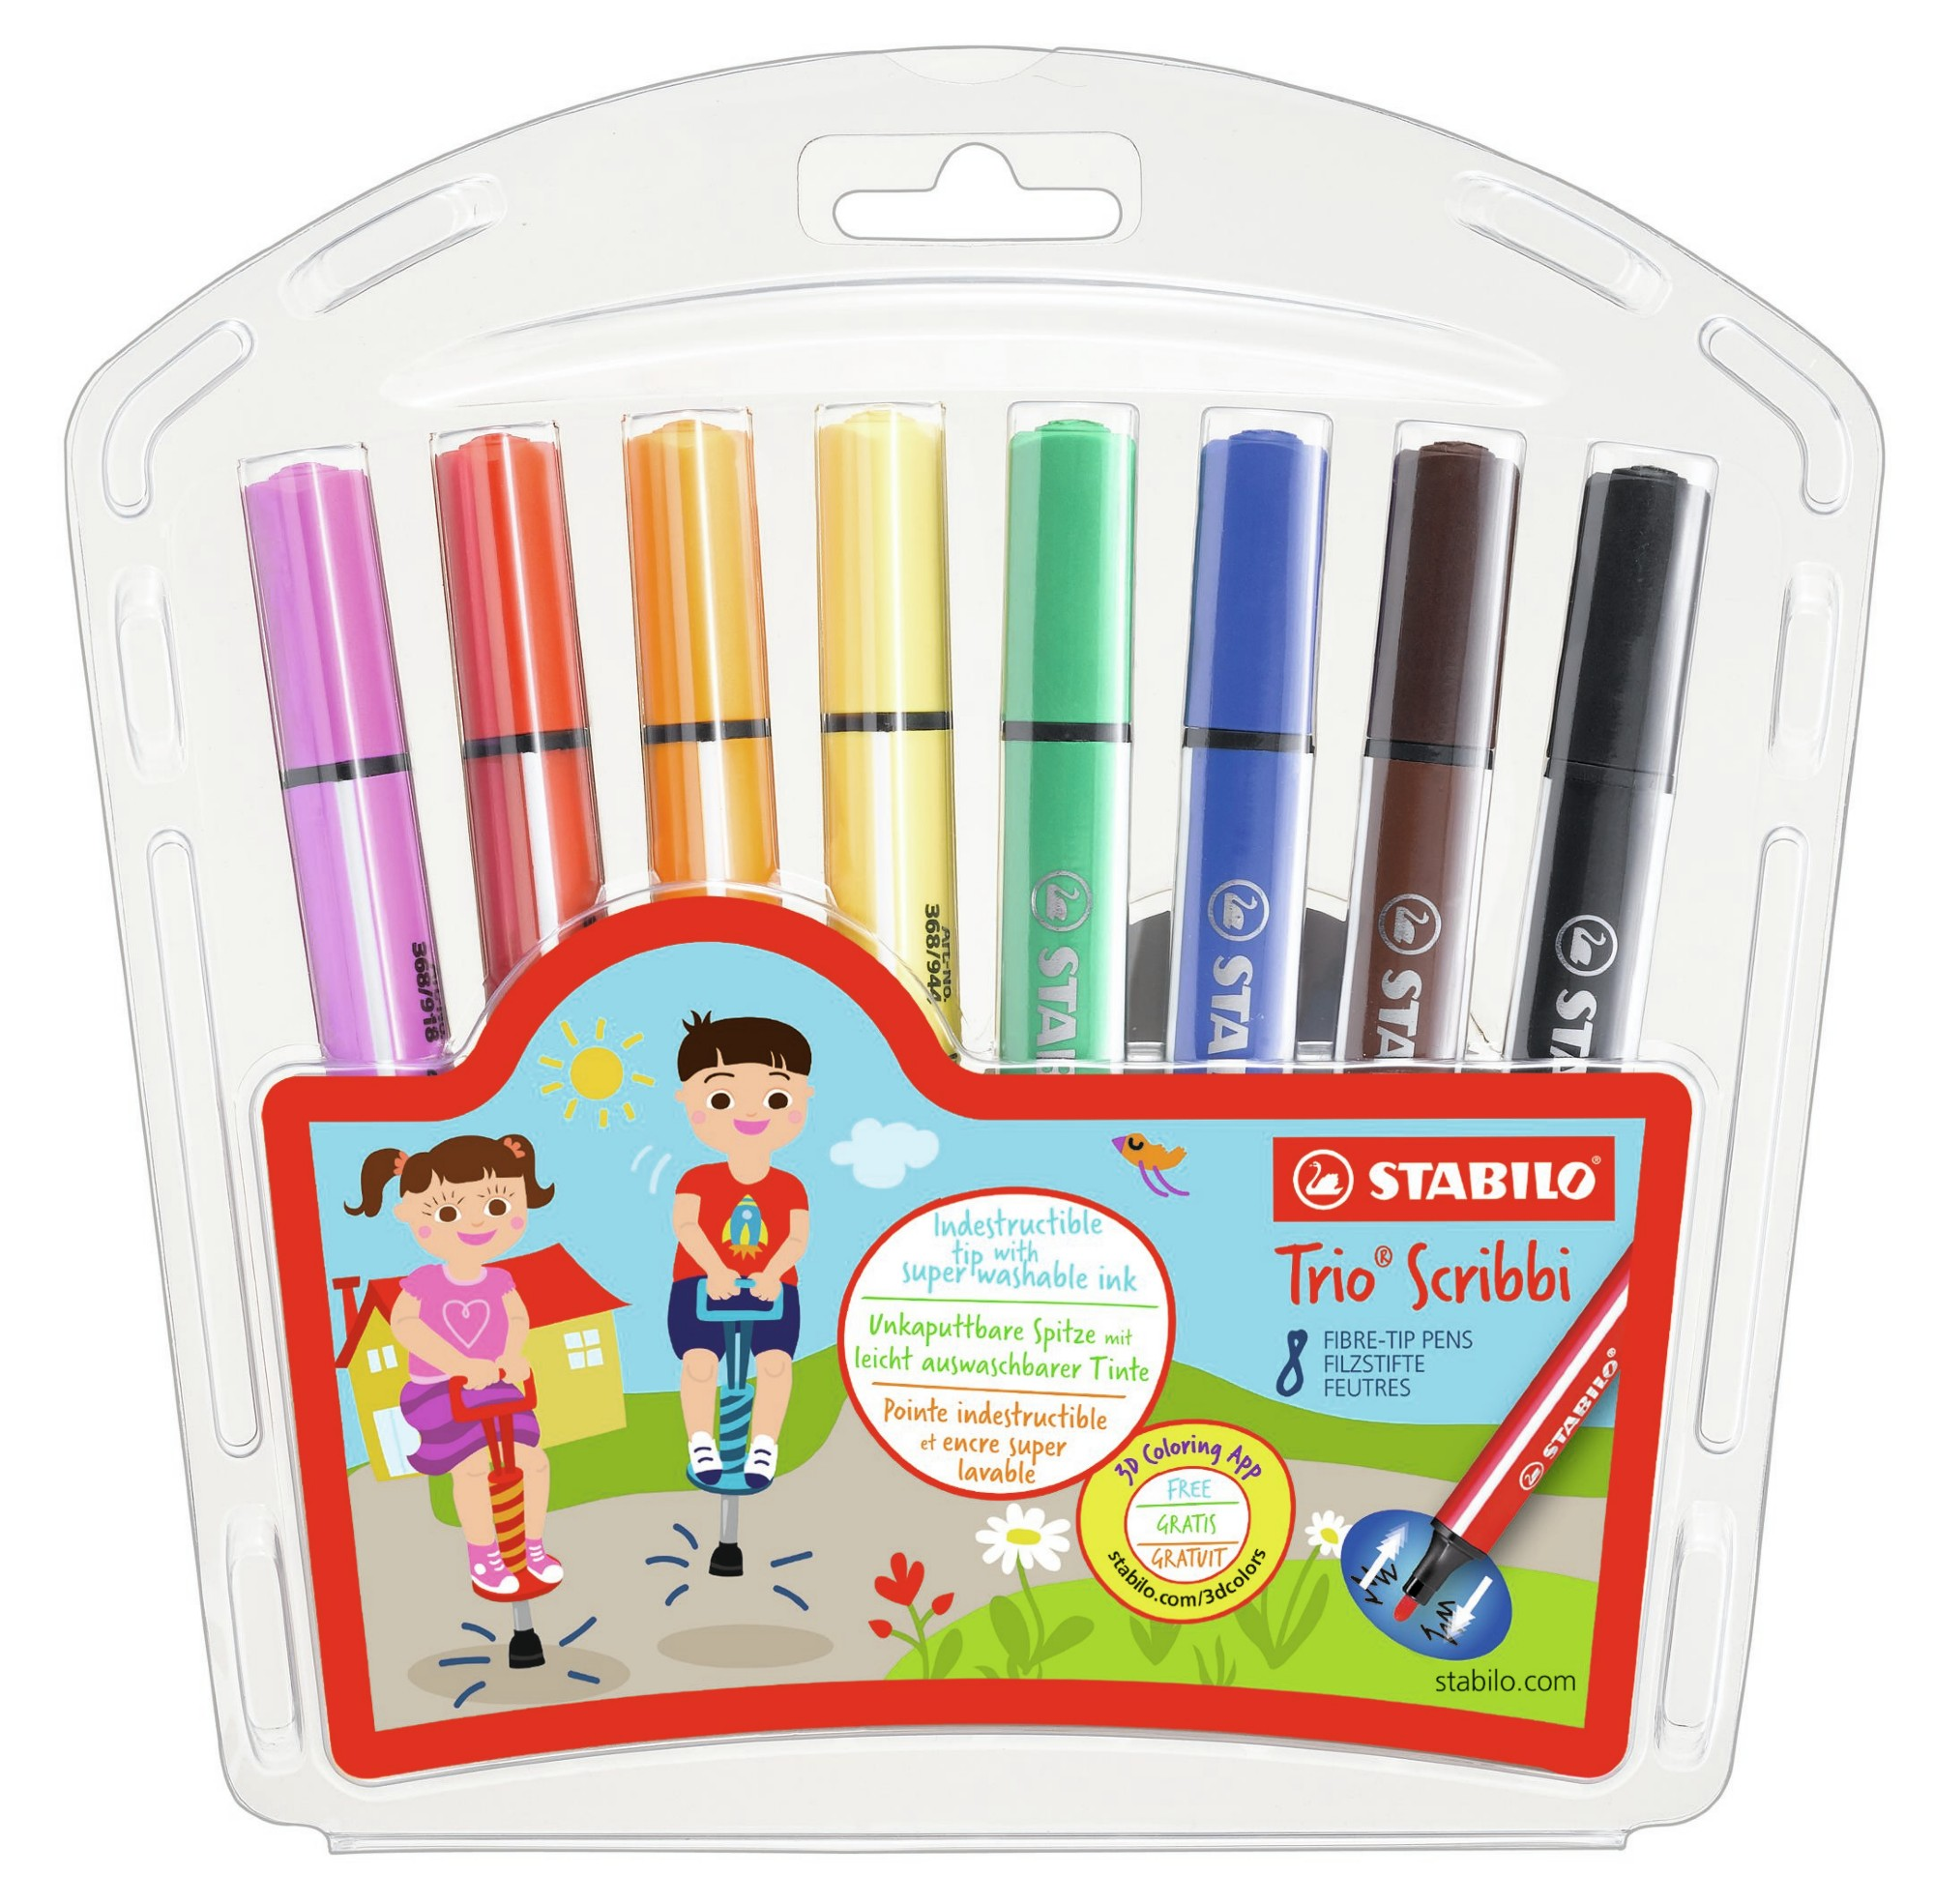 STABILO 368/8-01 TRIO SCRIBBI BOLD MULTICOLOUR 8PC(S) FELT PEN